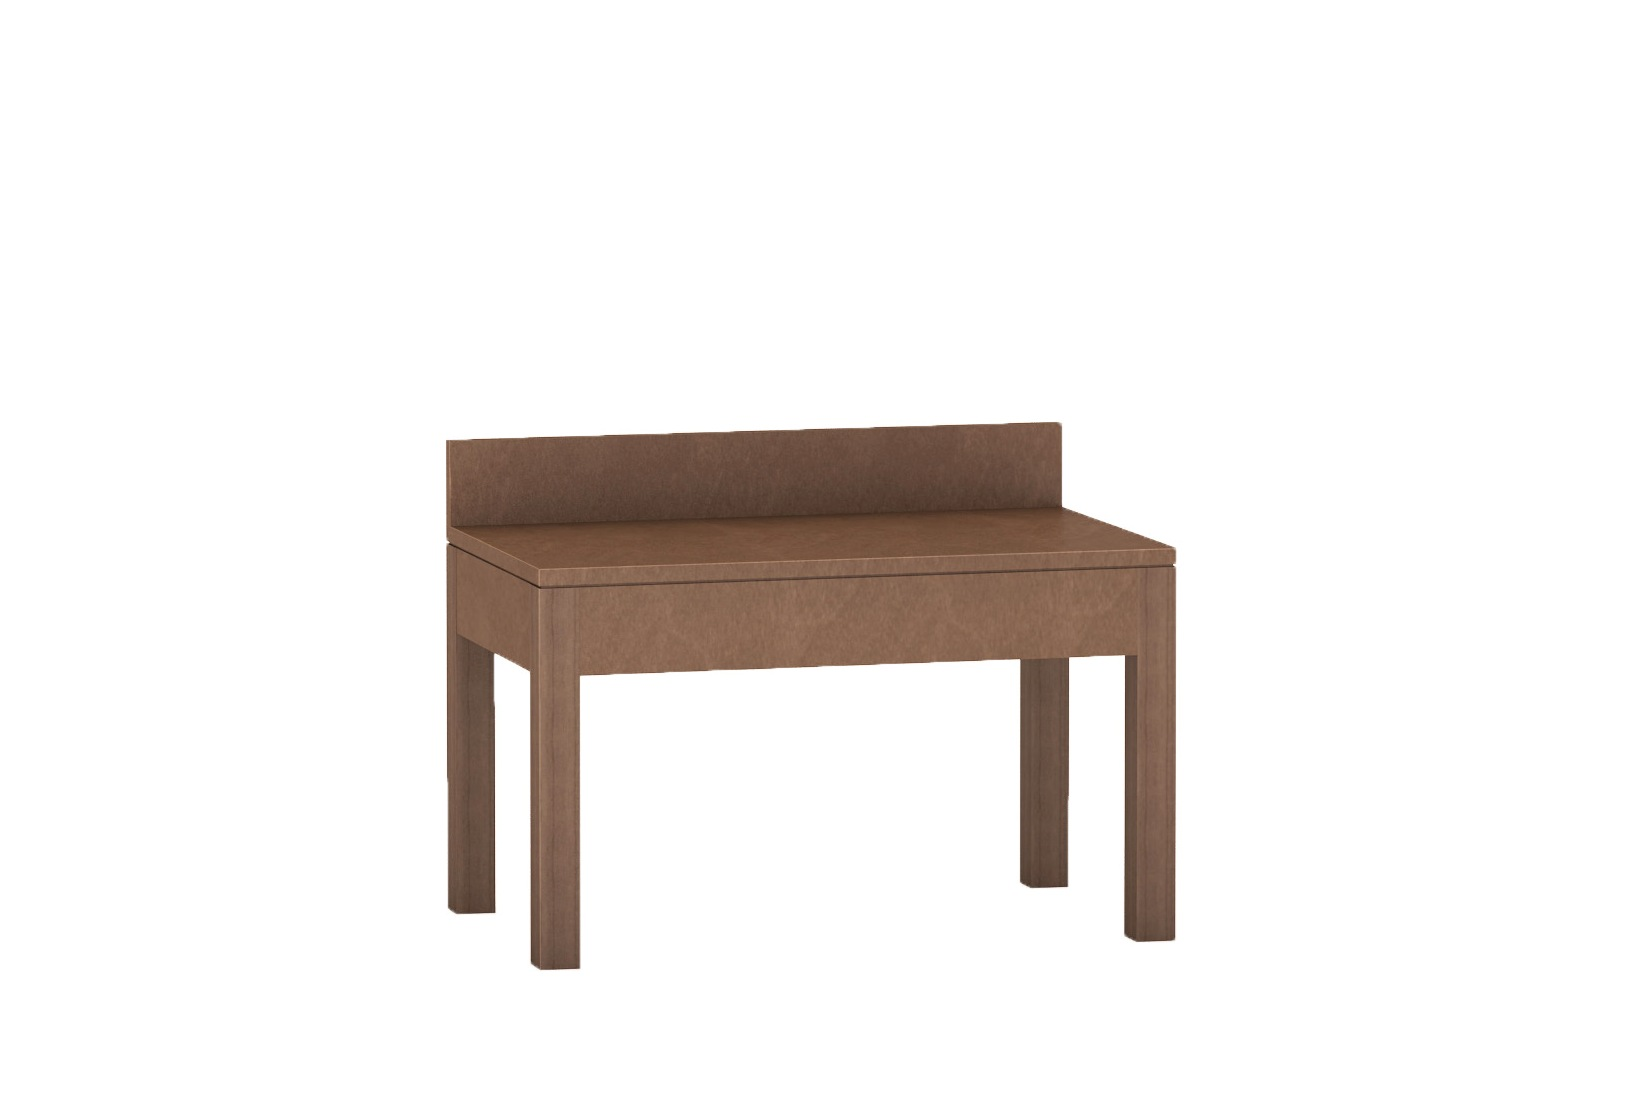 Icon Furniture Hudson Laminated Top Luggage Bench